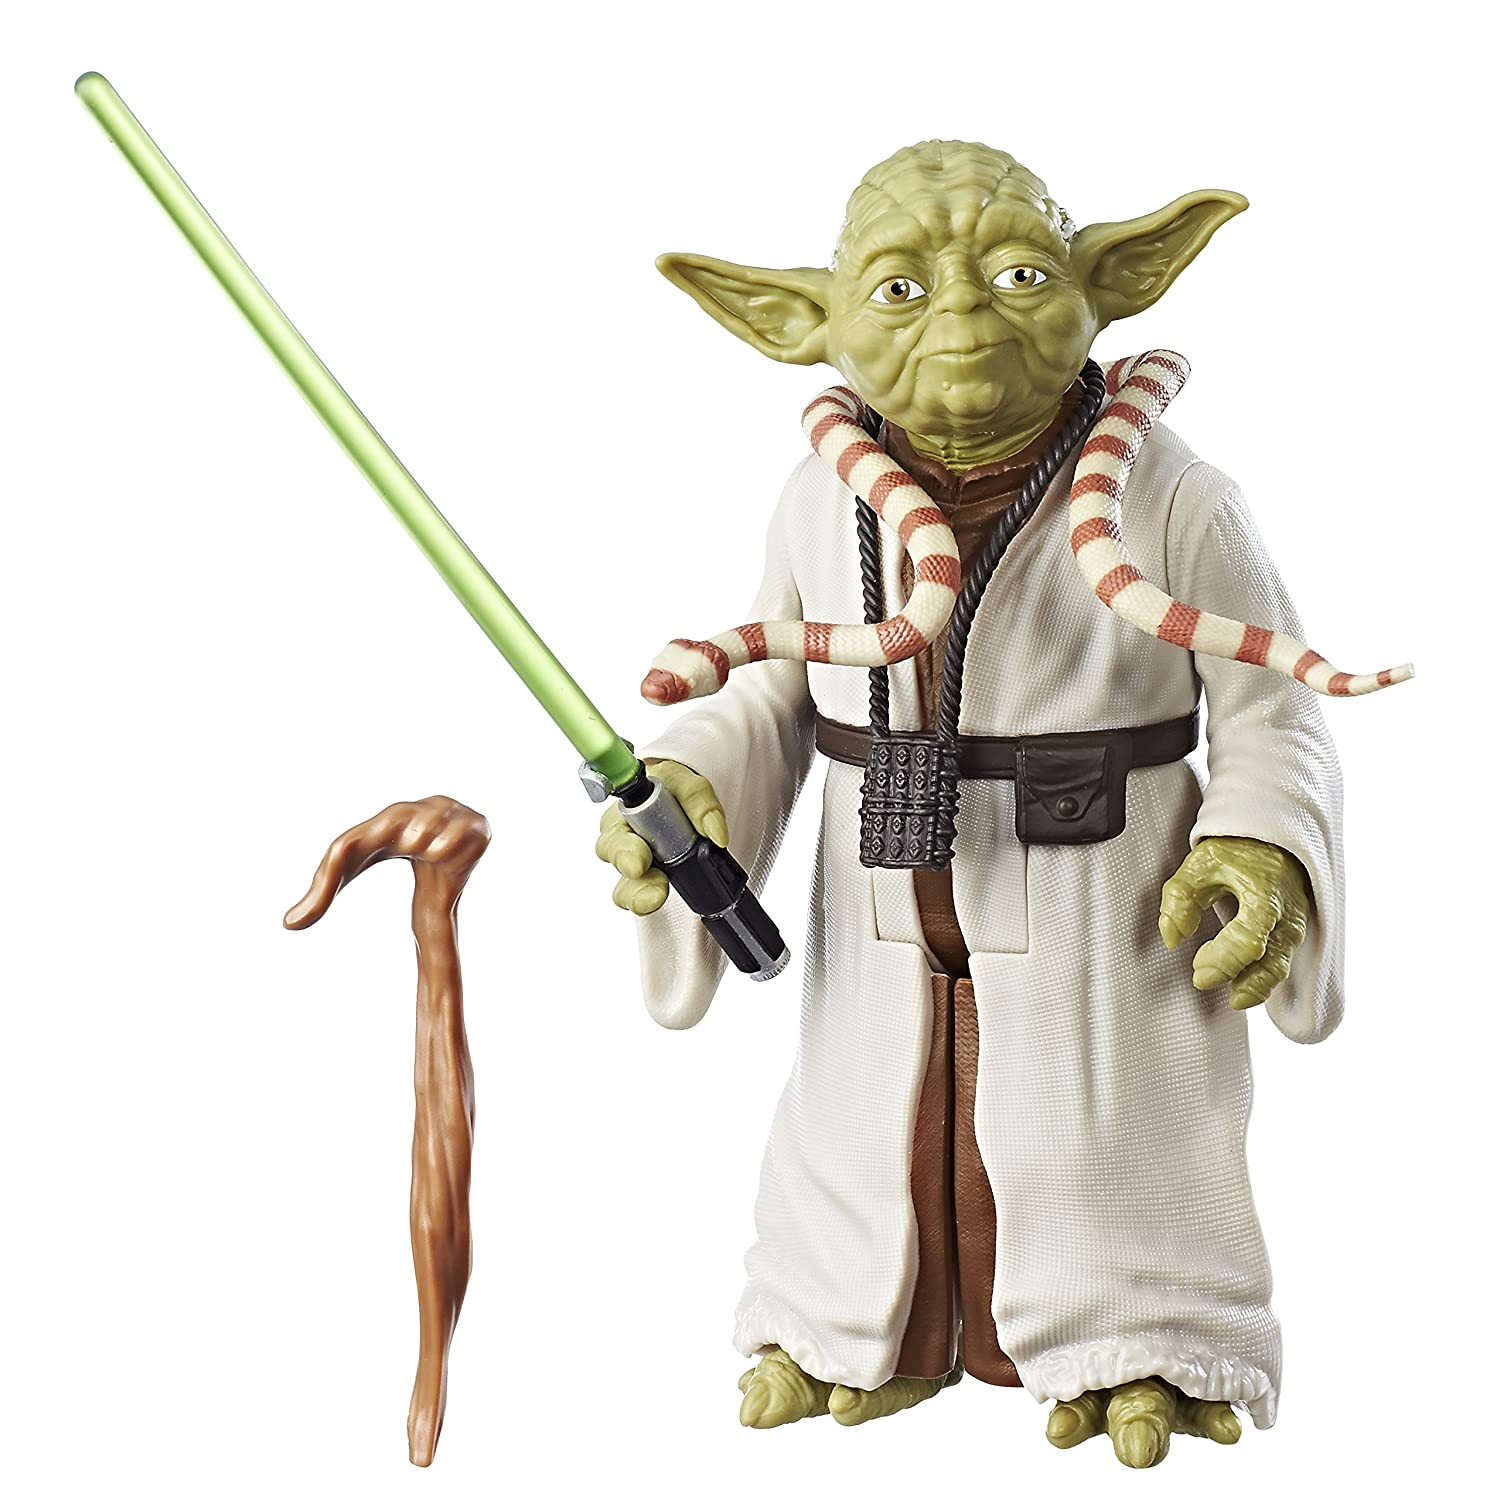 STAR WARS The Empire Strikes Back Yoda Figure, 12-Inch Hasbro C3423ES0